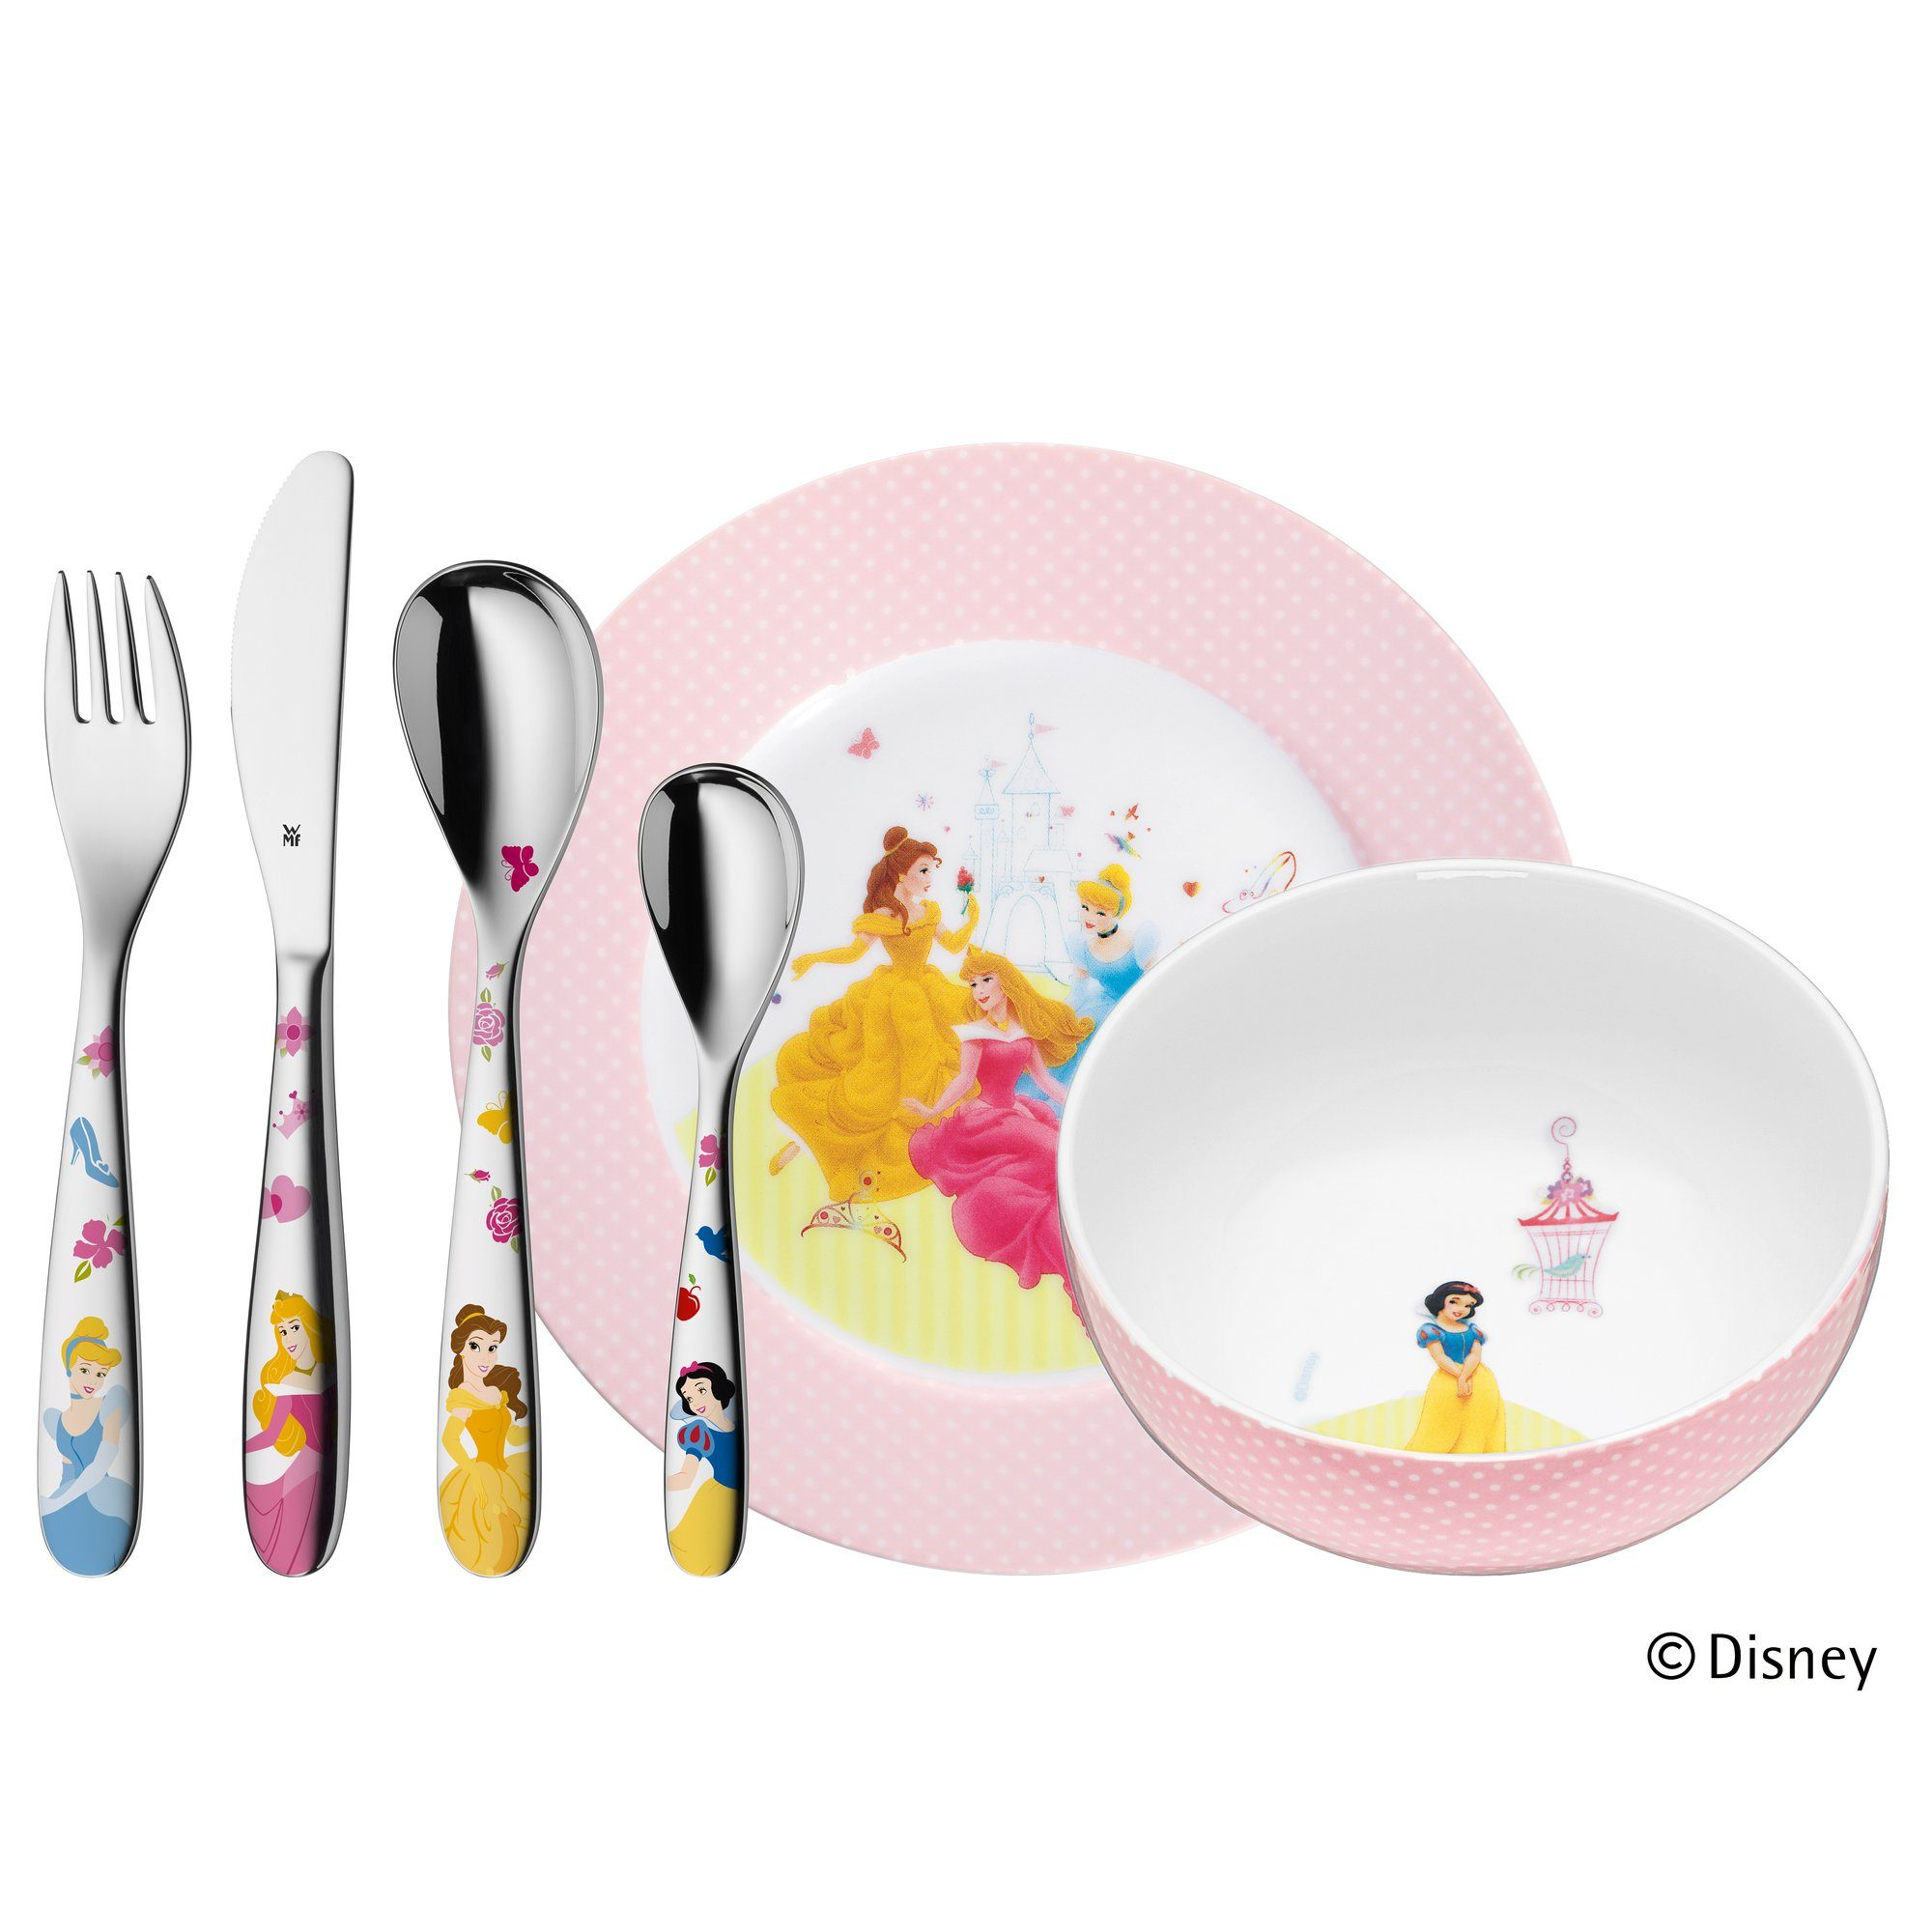 Kinderbesteck-Set 6-teilig Princess WMF bunt